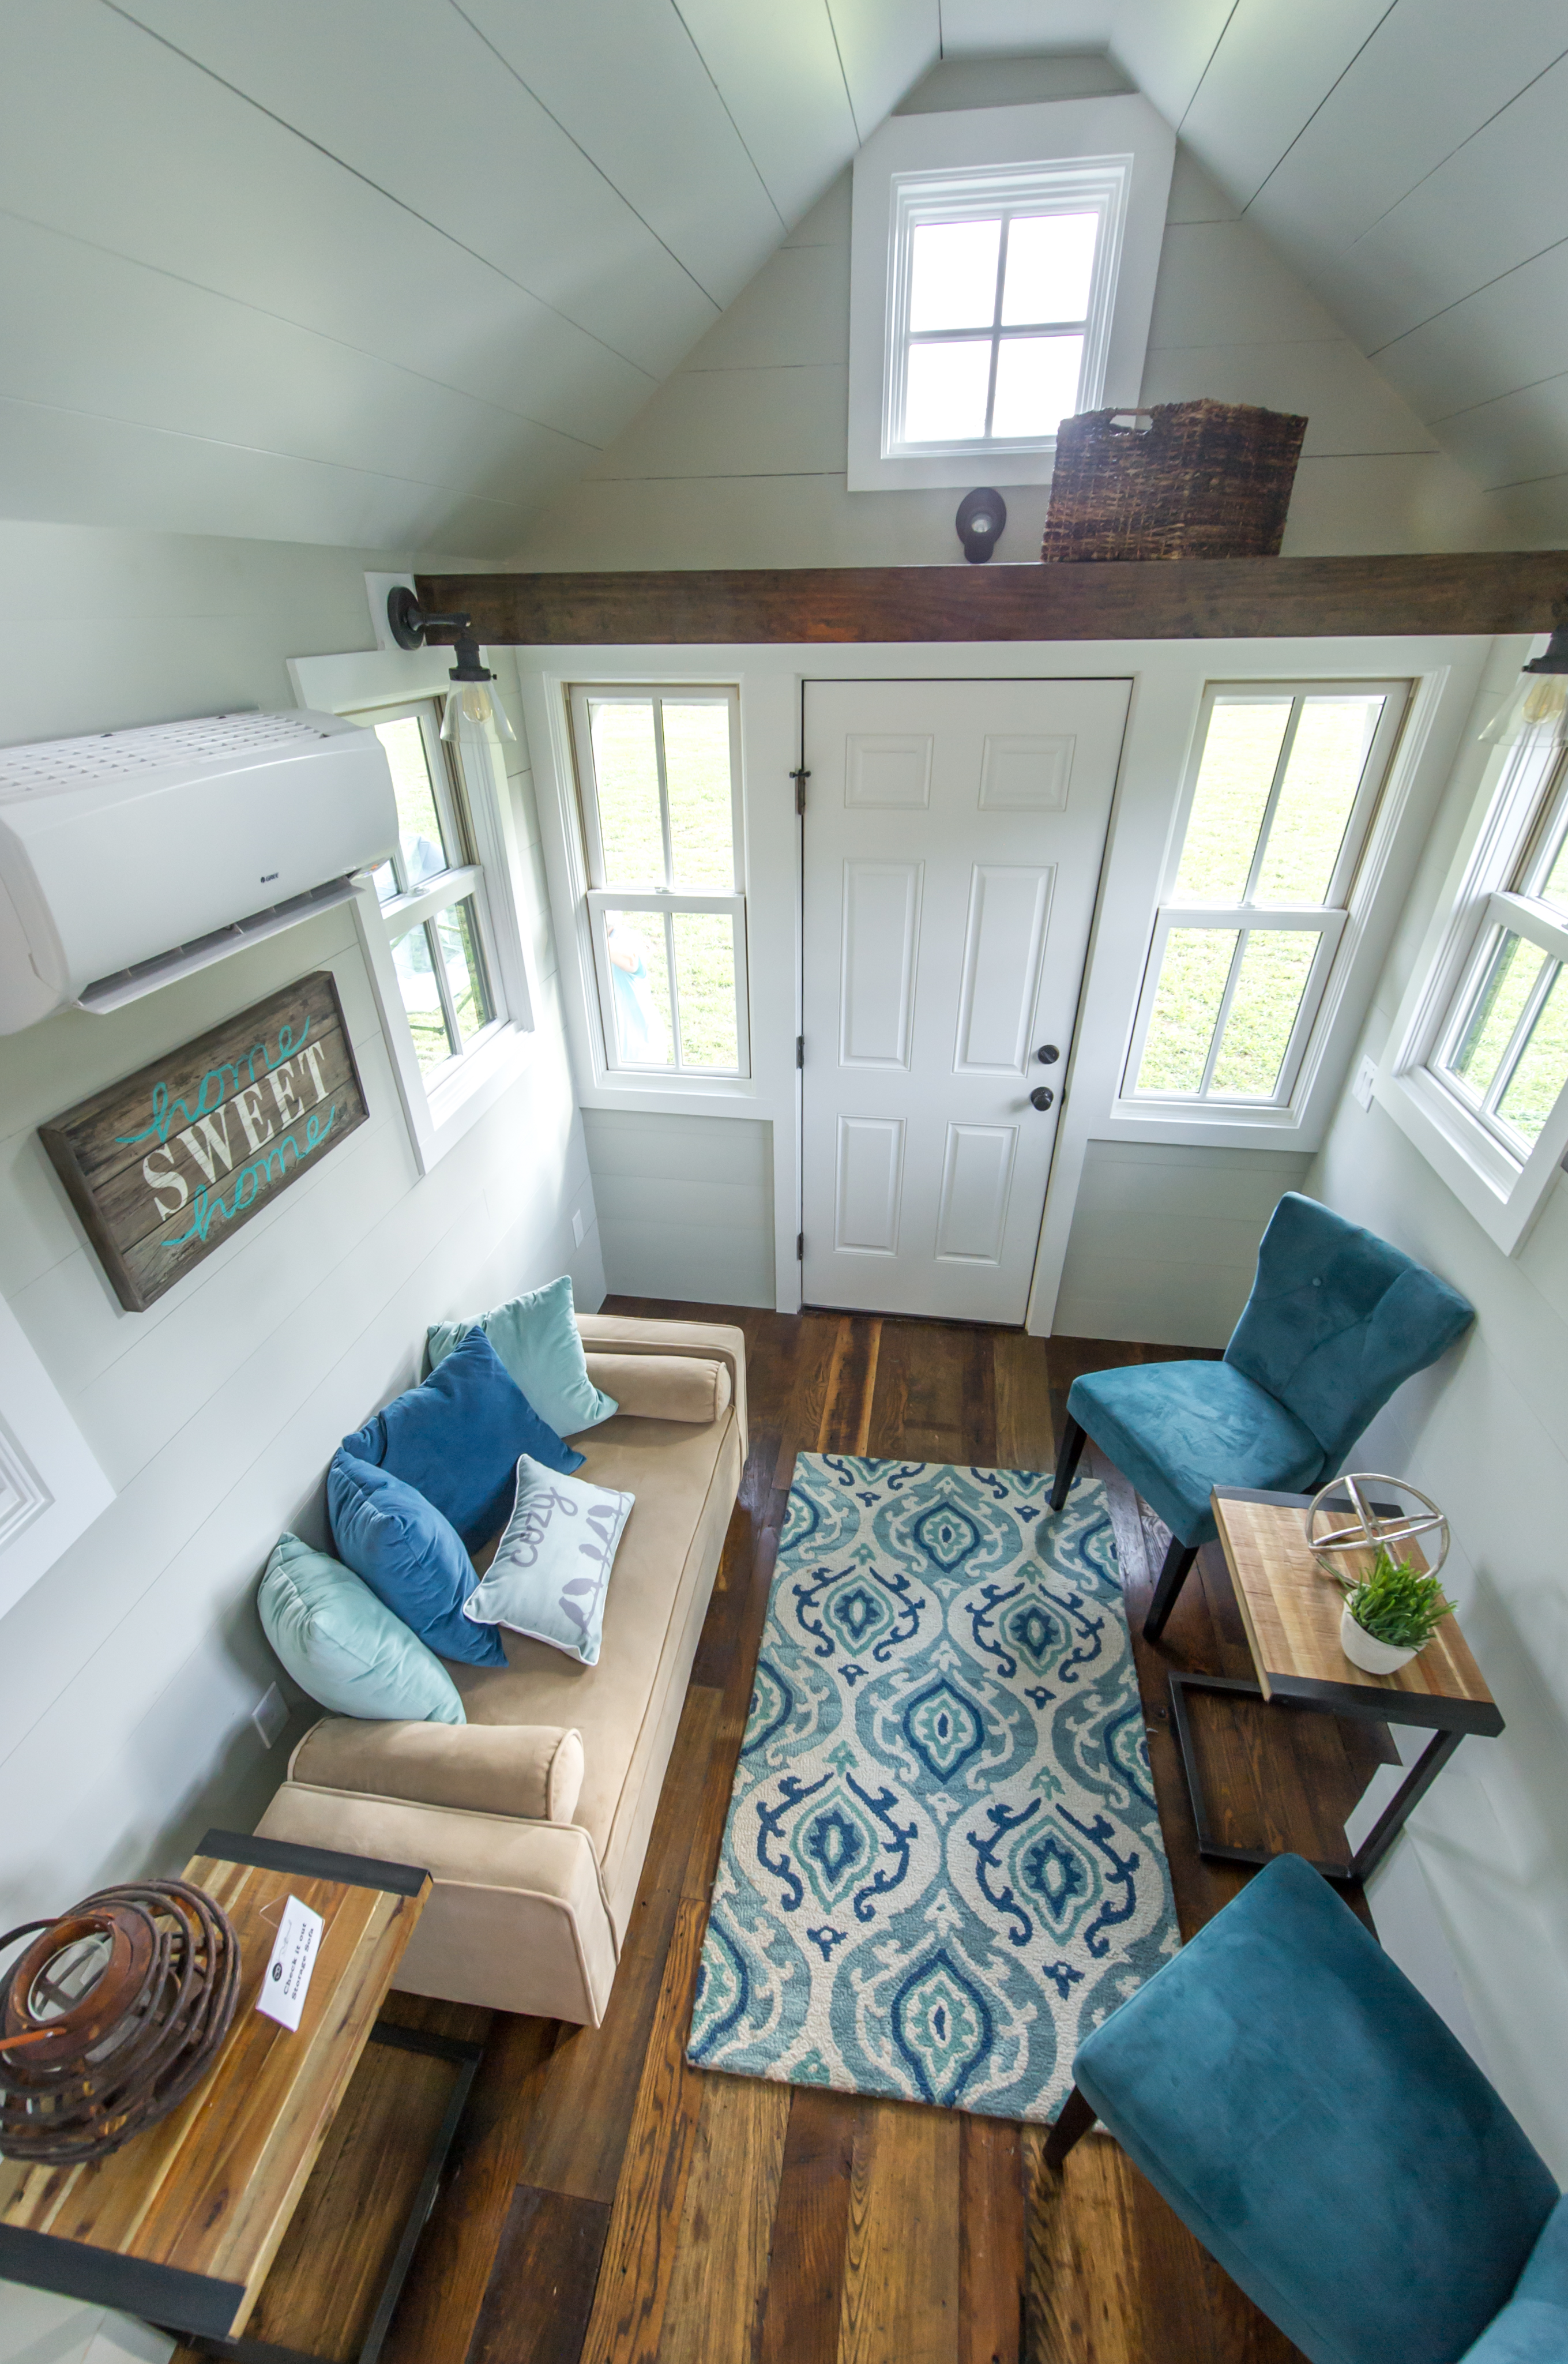 Tiny houses feature all the comforts of home.